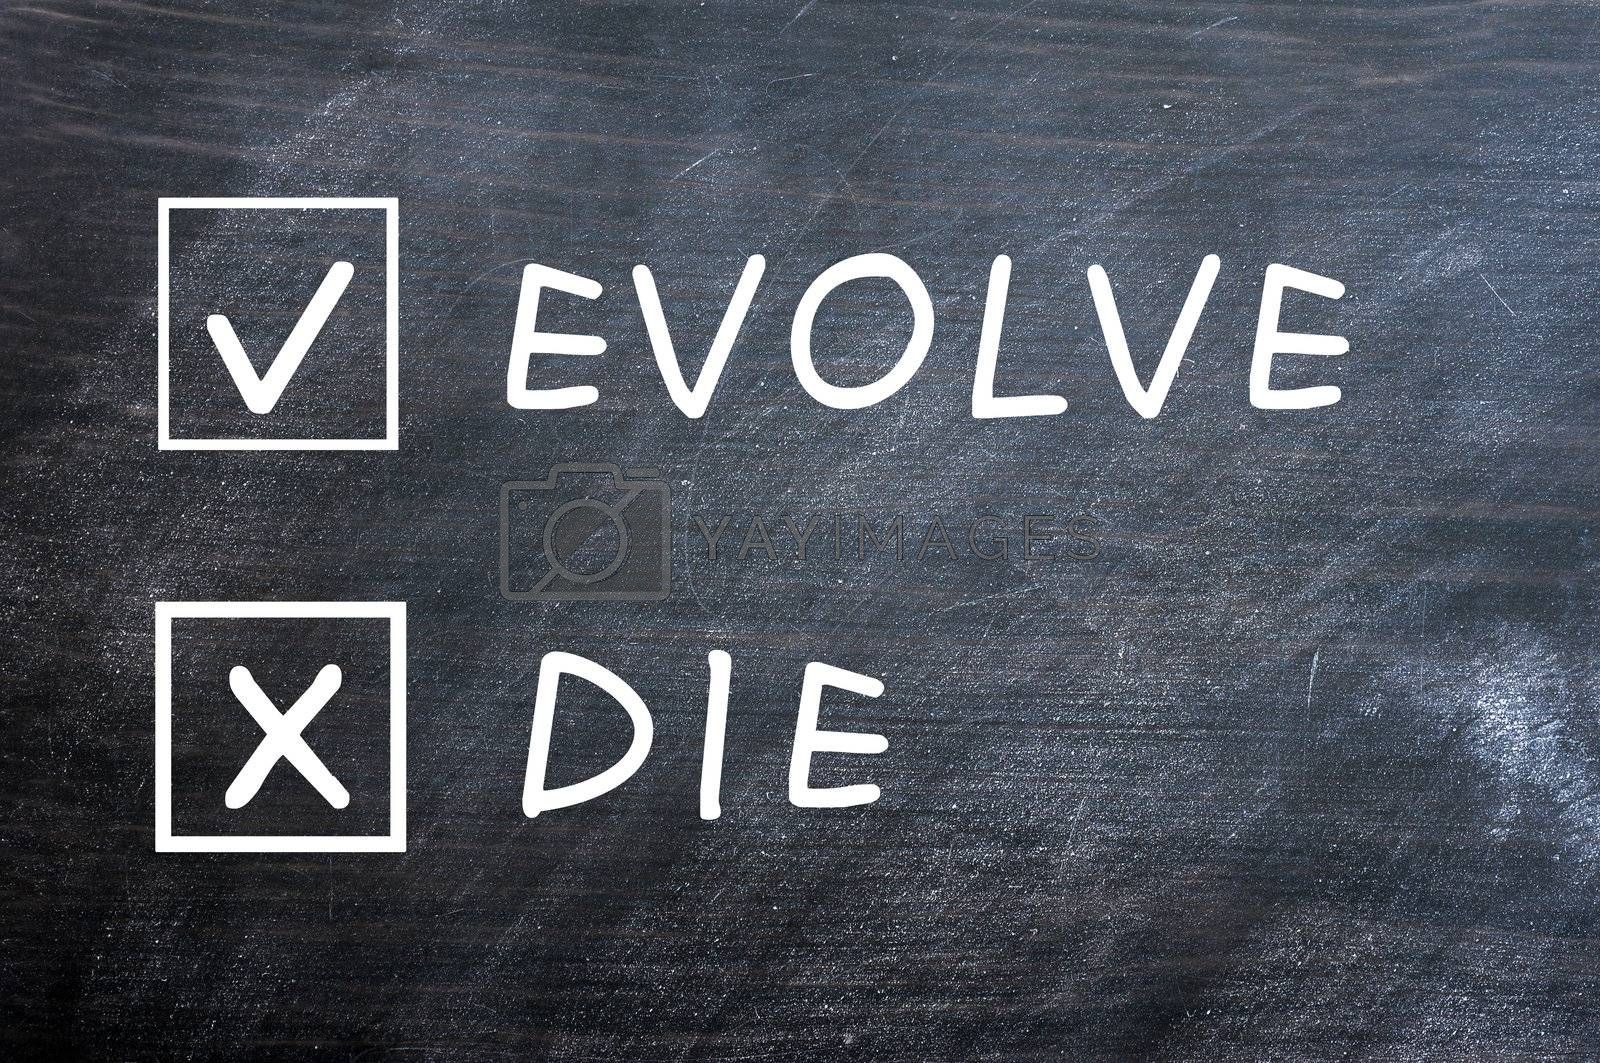 Evolve or die with check boxes drawn with chalk on a smudged blackboard